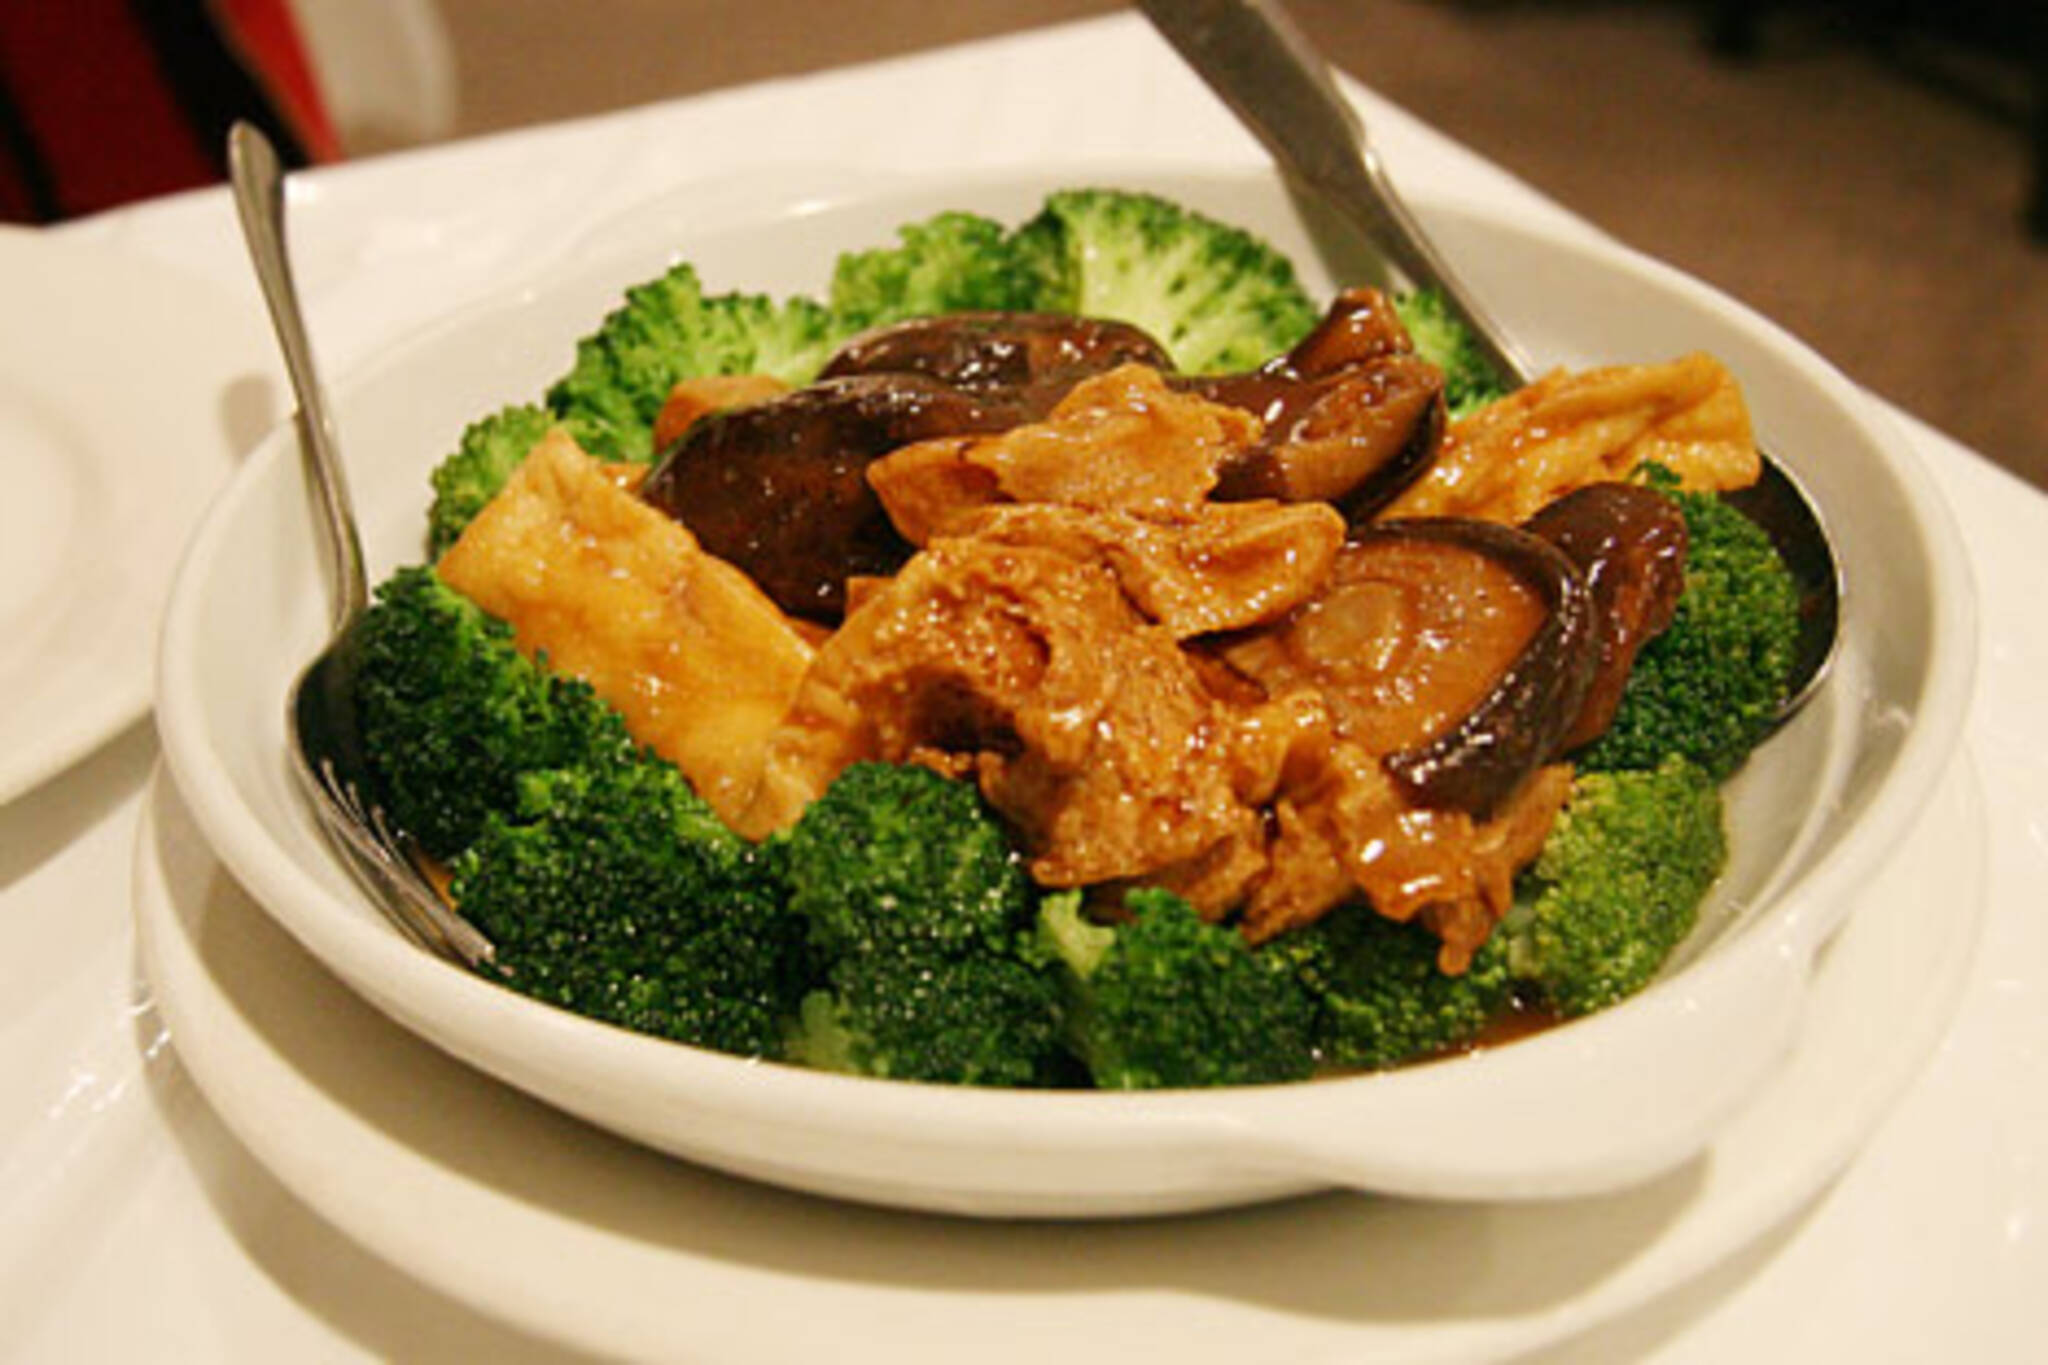 Braised Bean Curd with Vegetables